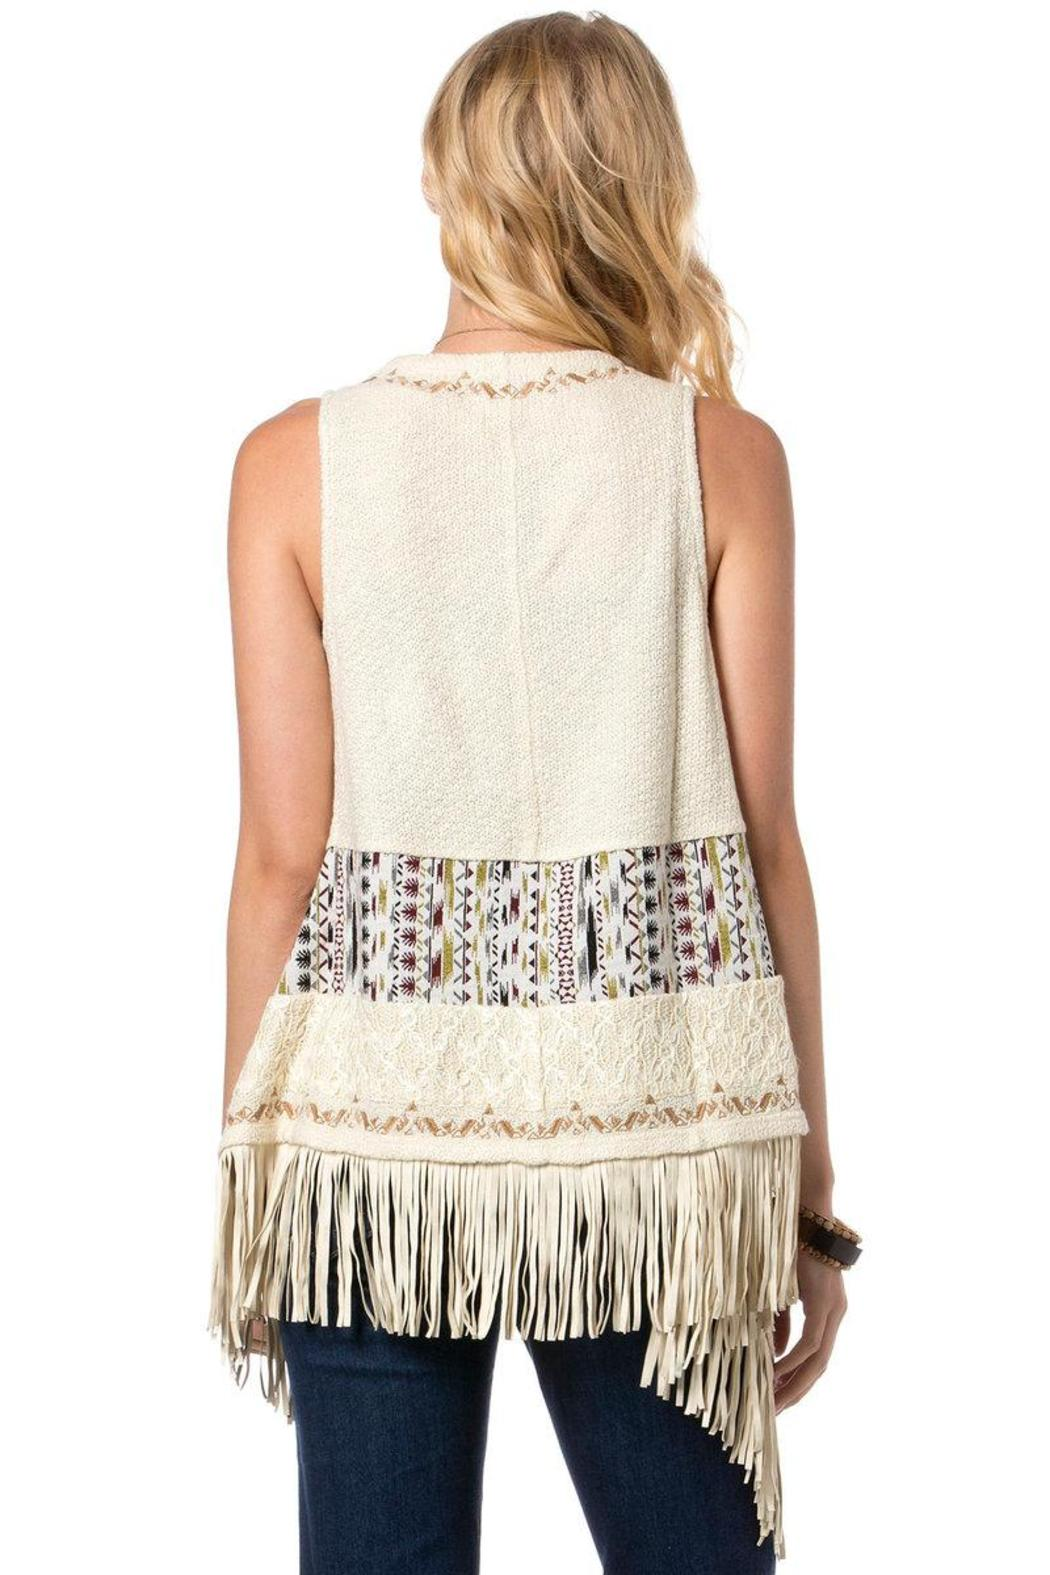 e75e7212871b Miss Me Embroidered Fringe Vest from New York by Luna — Shoptiques